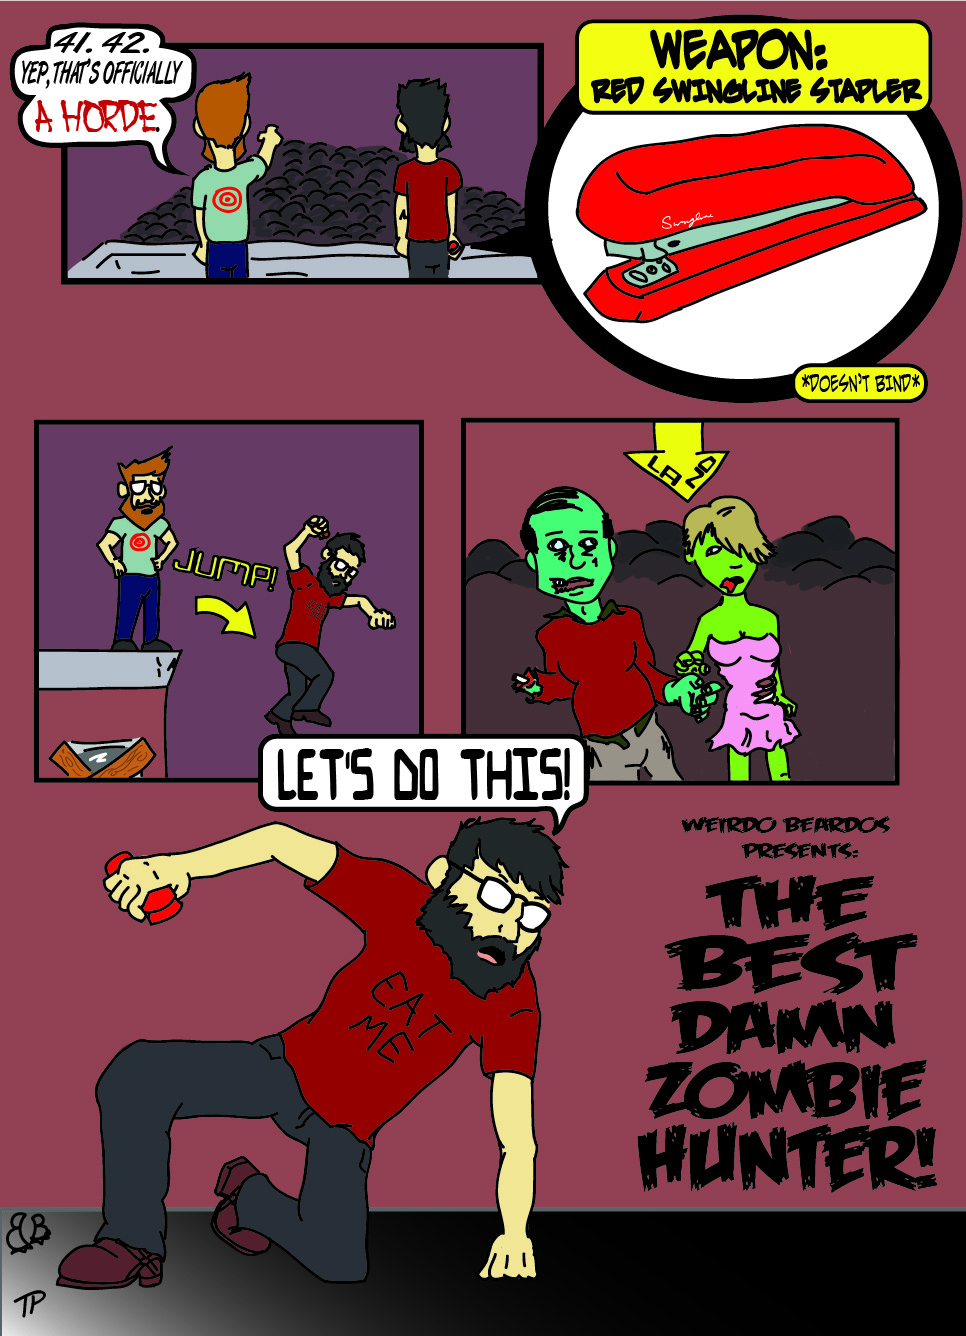 The Best Damn Zombie Hunter